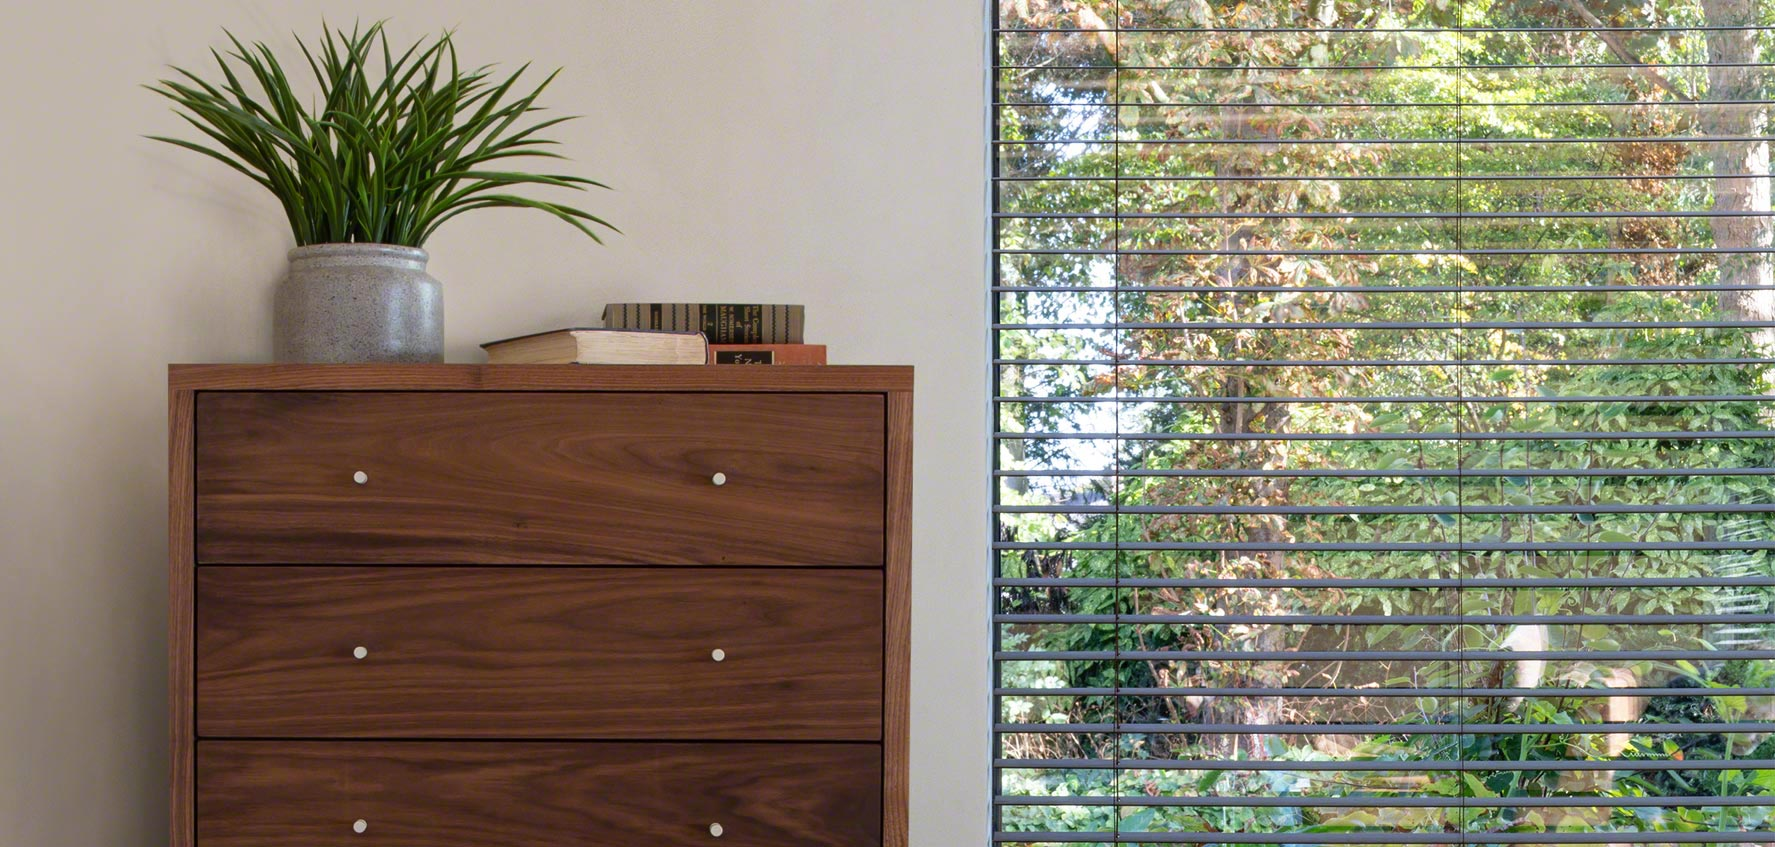 Larssen Chest in solid walnut with plants and window